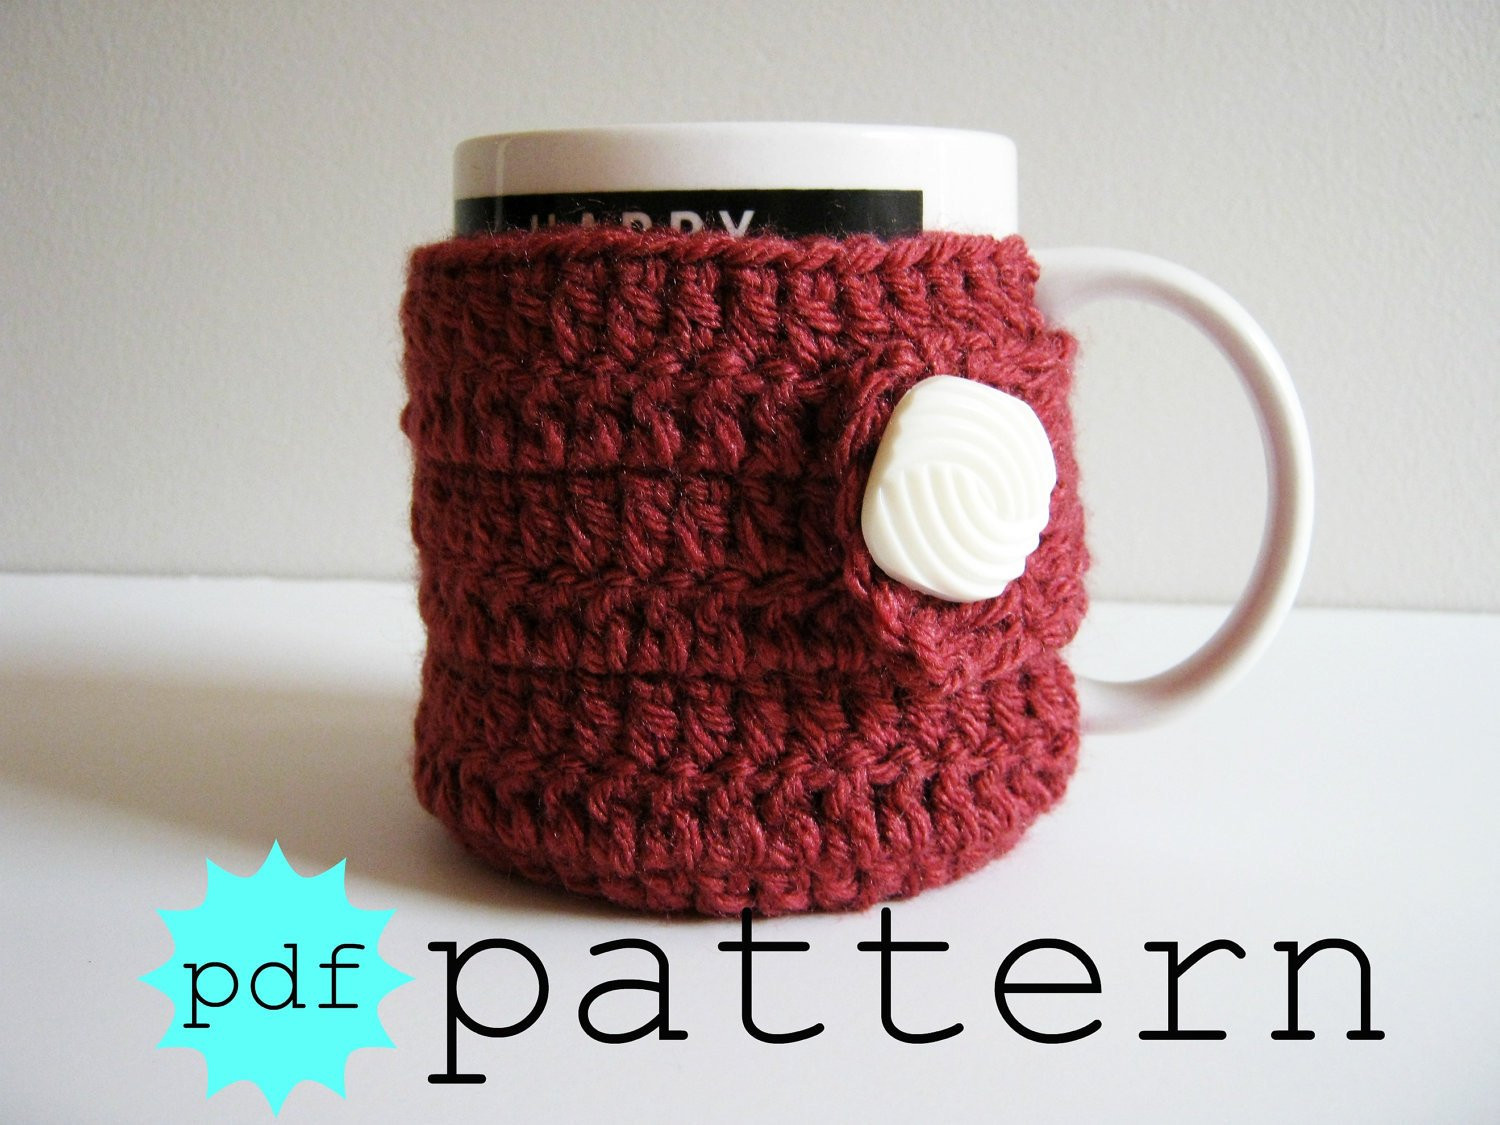 Crochet Coffee Cup Cozy Luxury Pdf Crochet Pattern Coffee Mug Cozy with button by Of Crochet Coffee Cup Cozy Inspirational Crochet Class Beginning Crochet Sparkleez Crystles